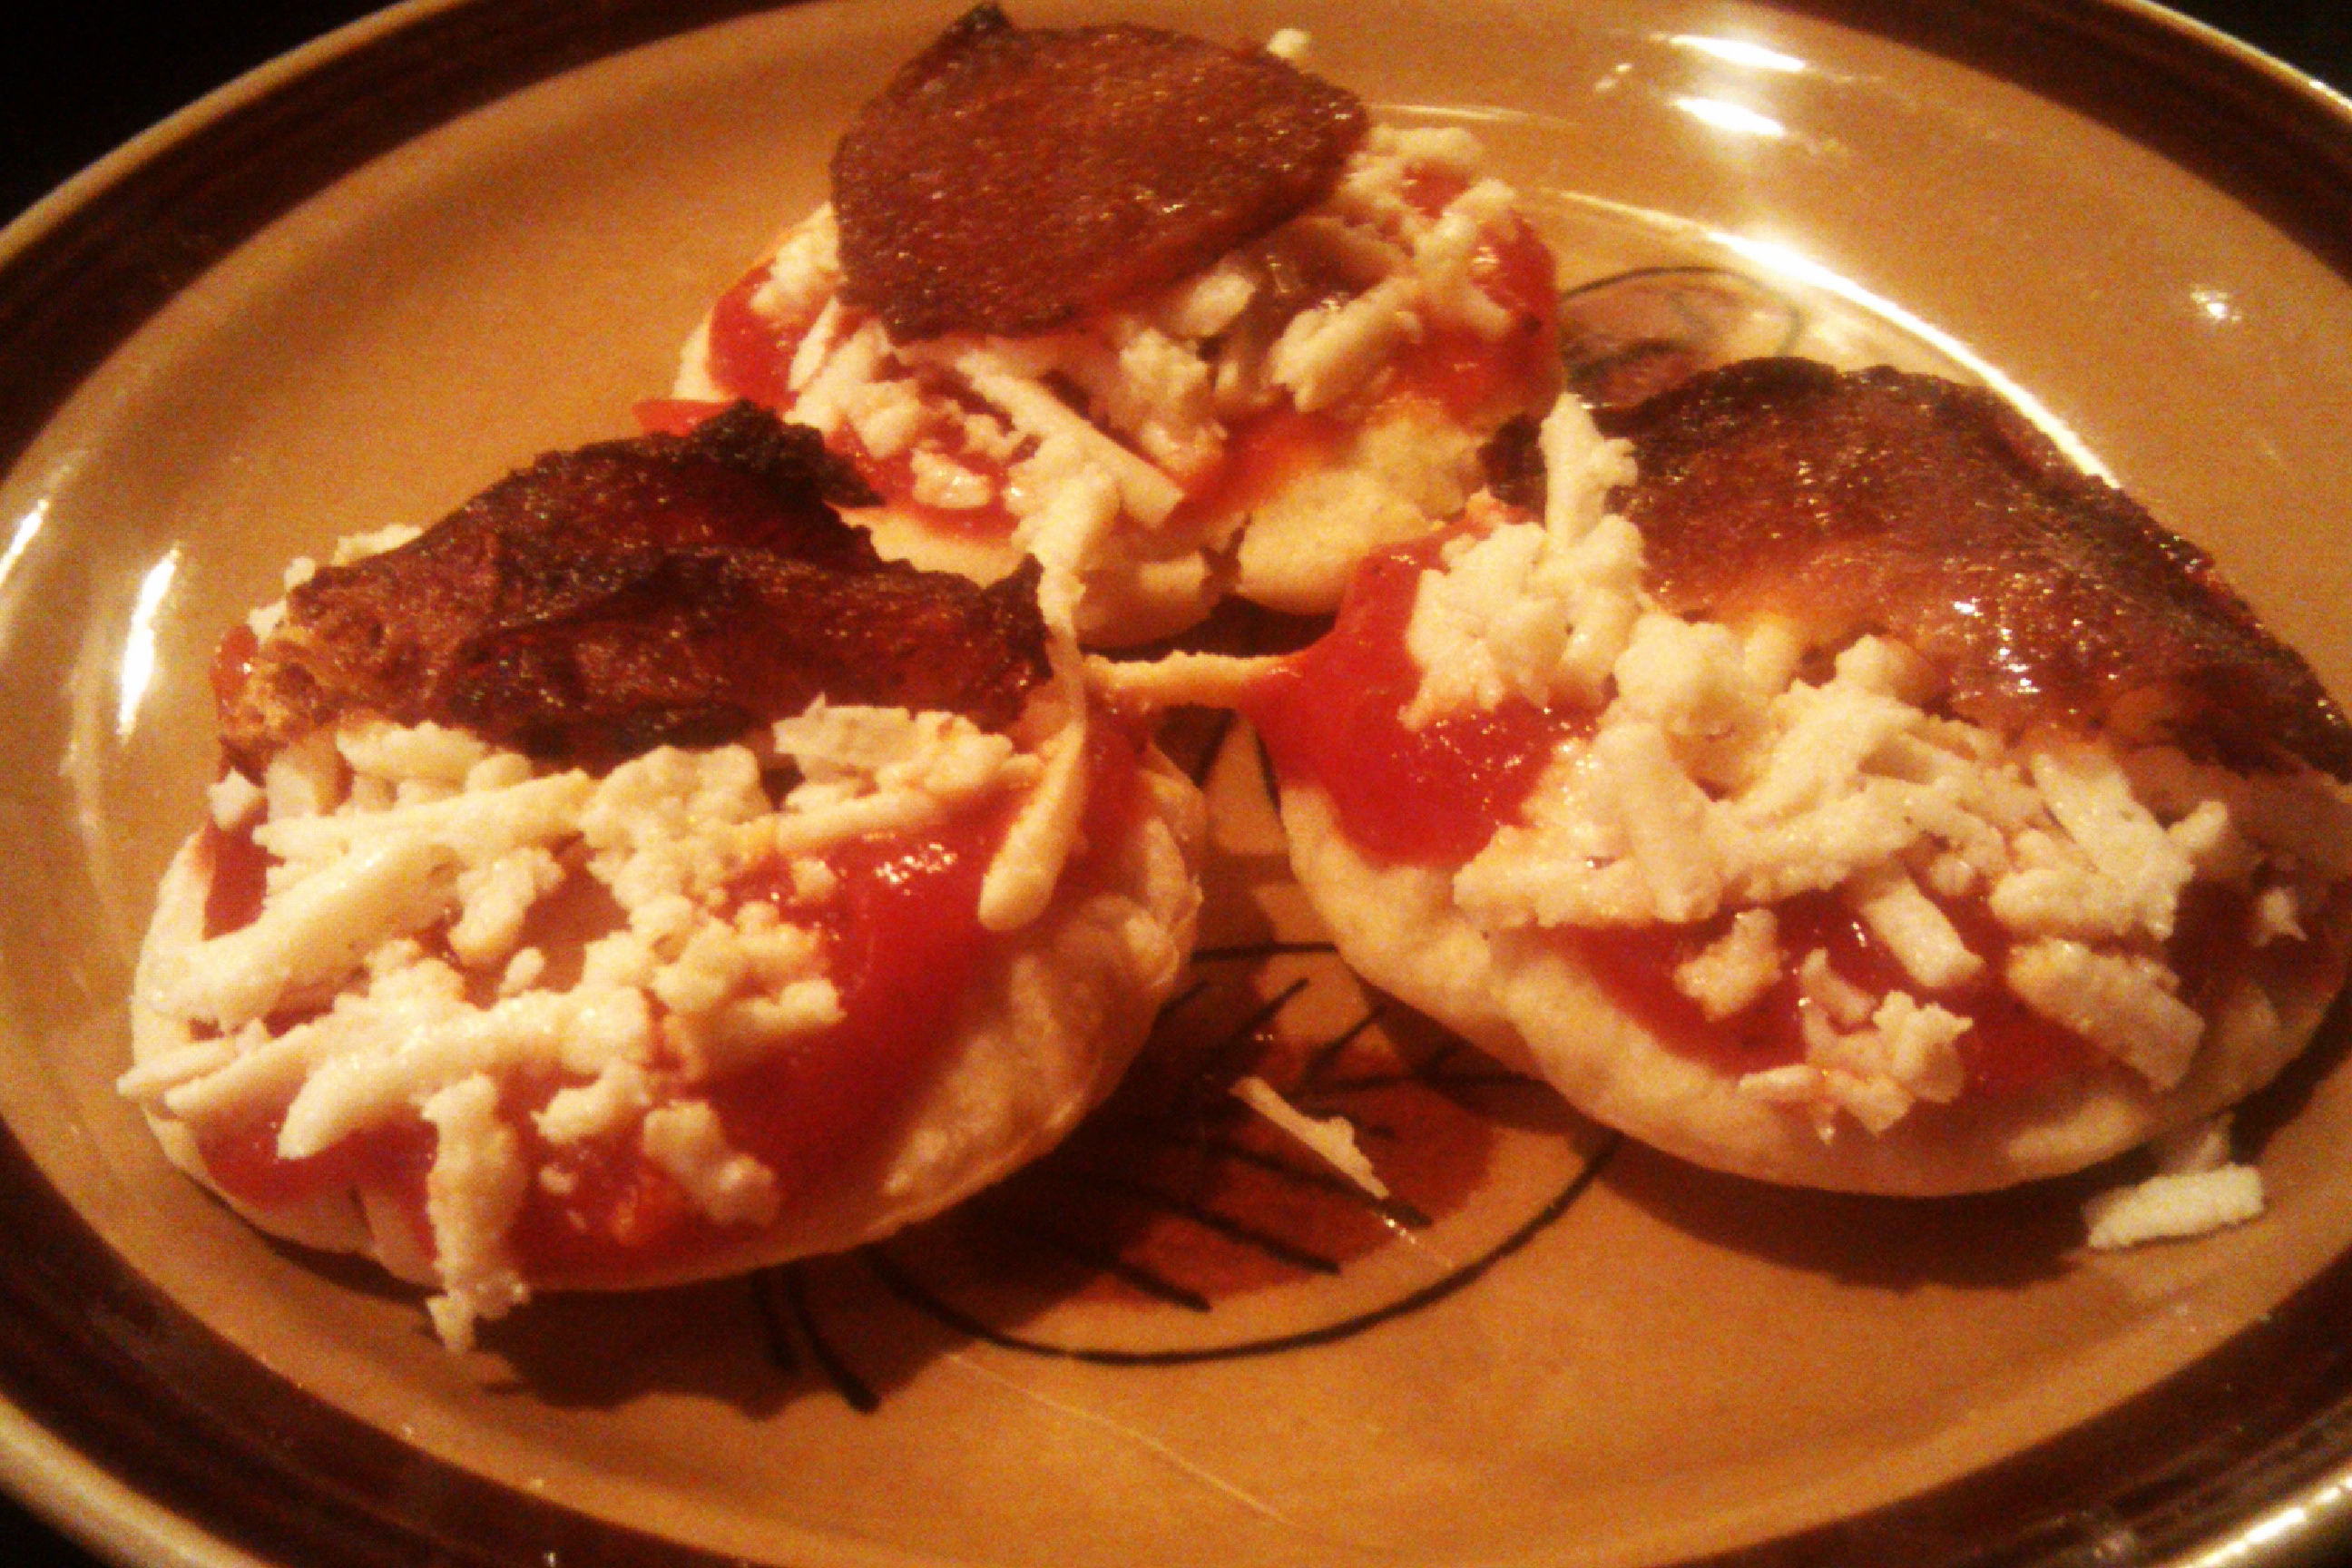 281485 Lunchables Burgers besides Sprinkle Spangles further Ultimate Nachos moreover Watch besides Category Varieties. on lunchables pizza swirls